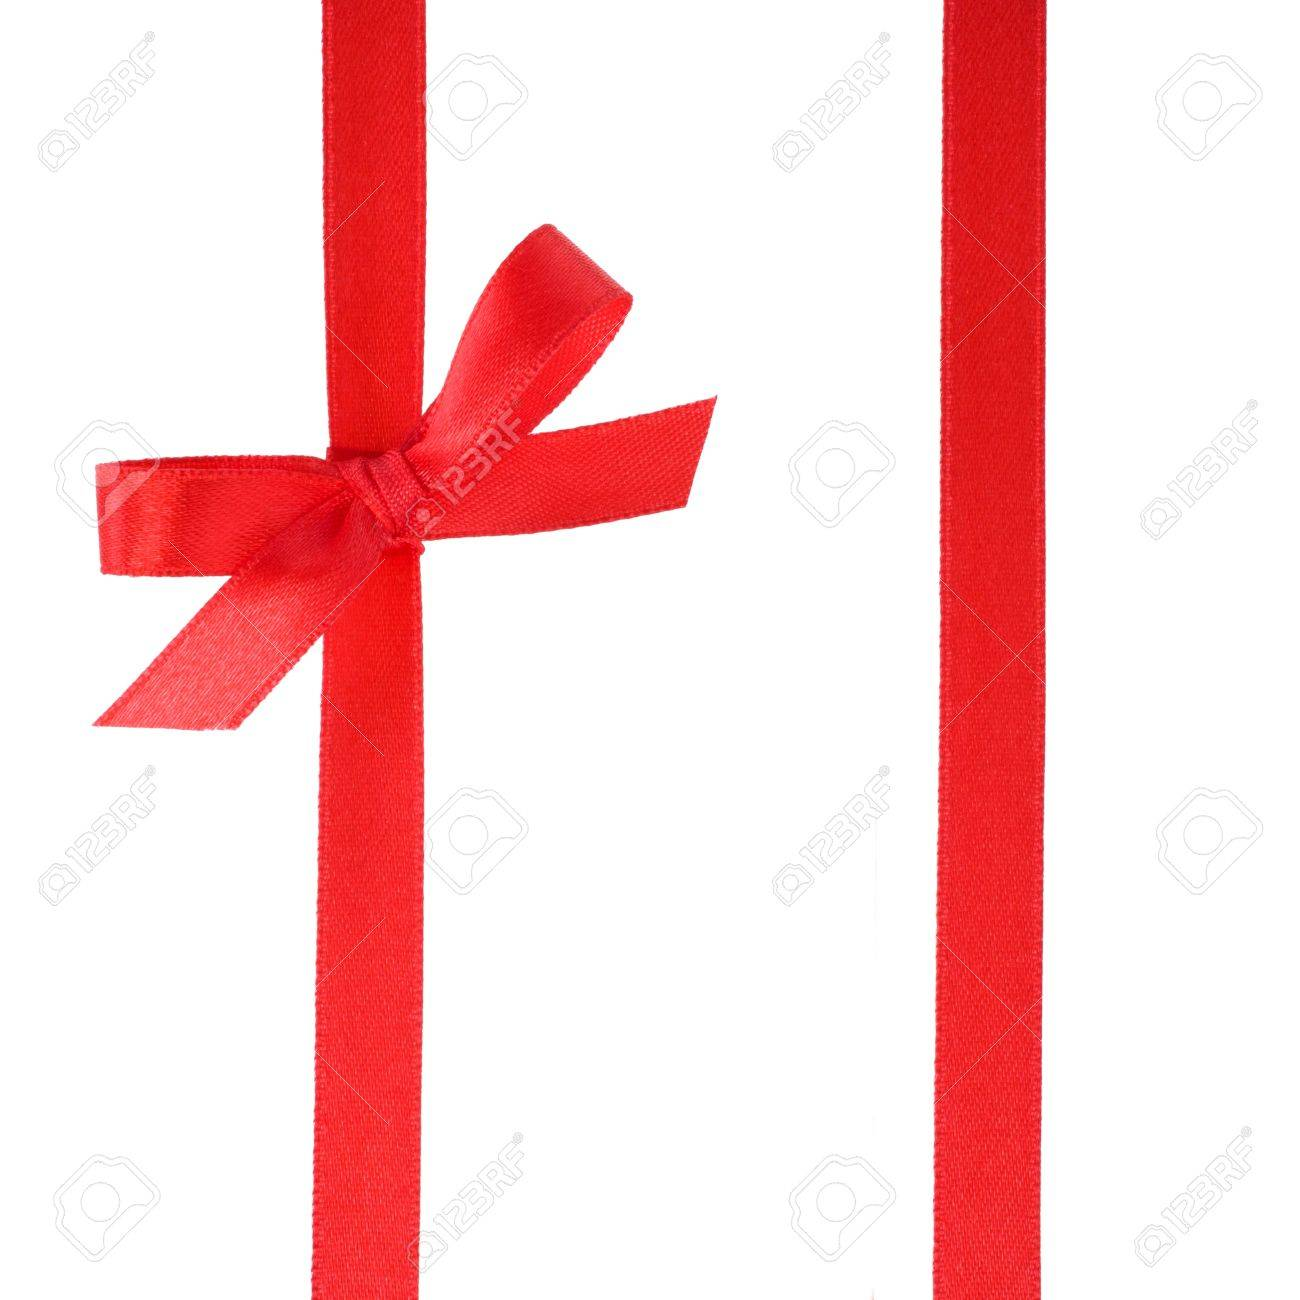 Festive gift ribbon and bow isolated on white Stock Photo - 9054451